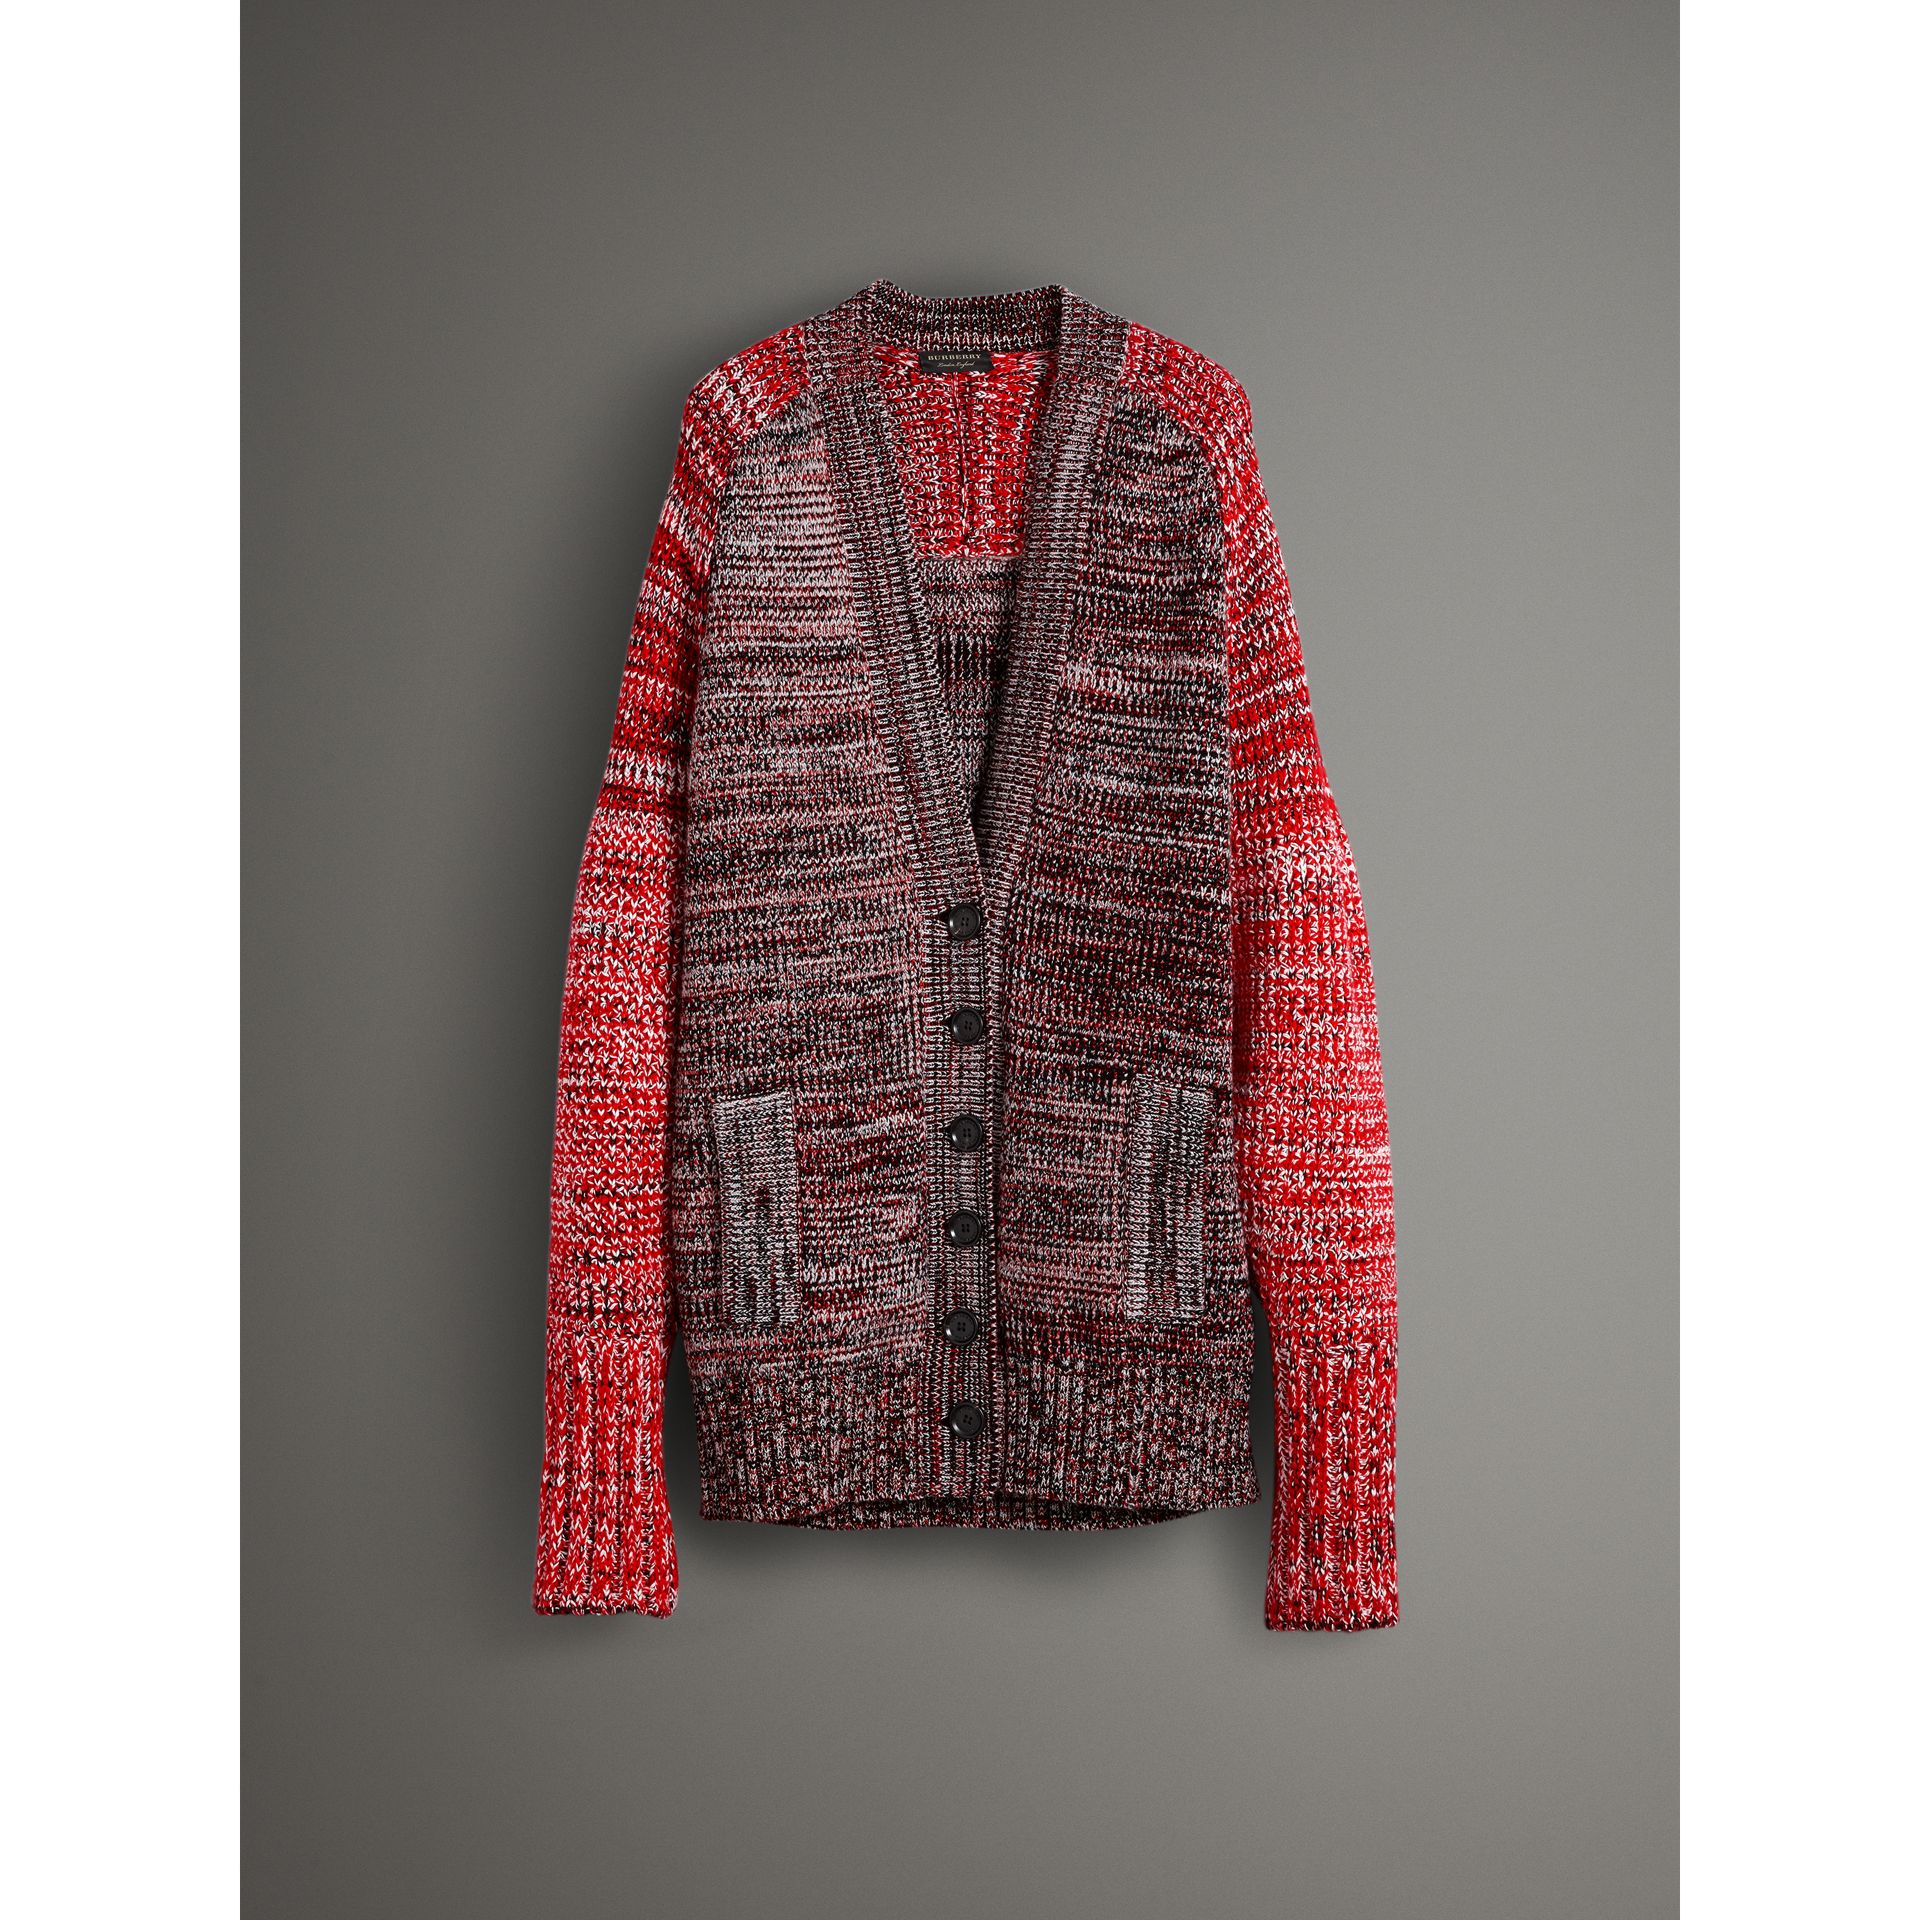 Cashmere Wool Blend Mouliné Oversized Cardigan in Red/black - Women | Burberry - gallery image 4